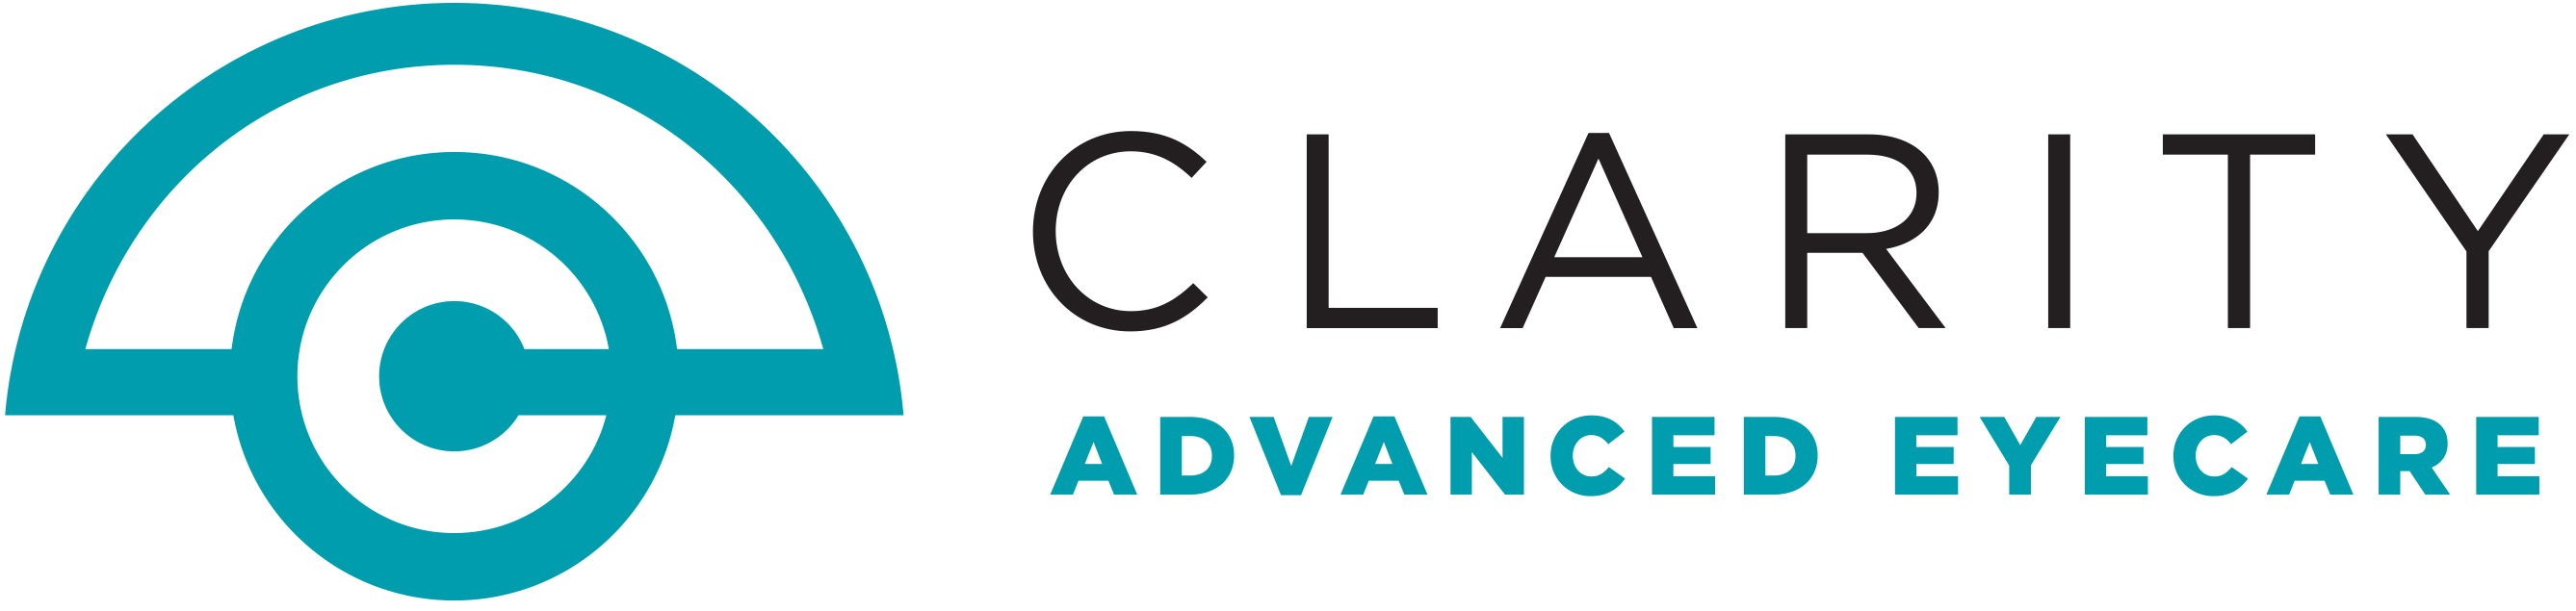 Clarity Advanced Eyecare Logo